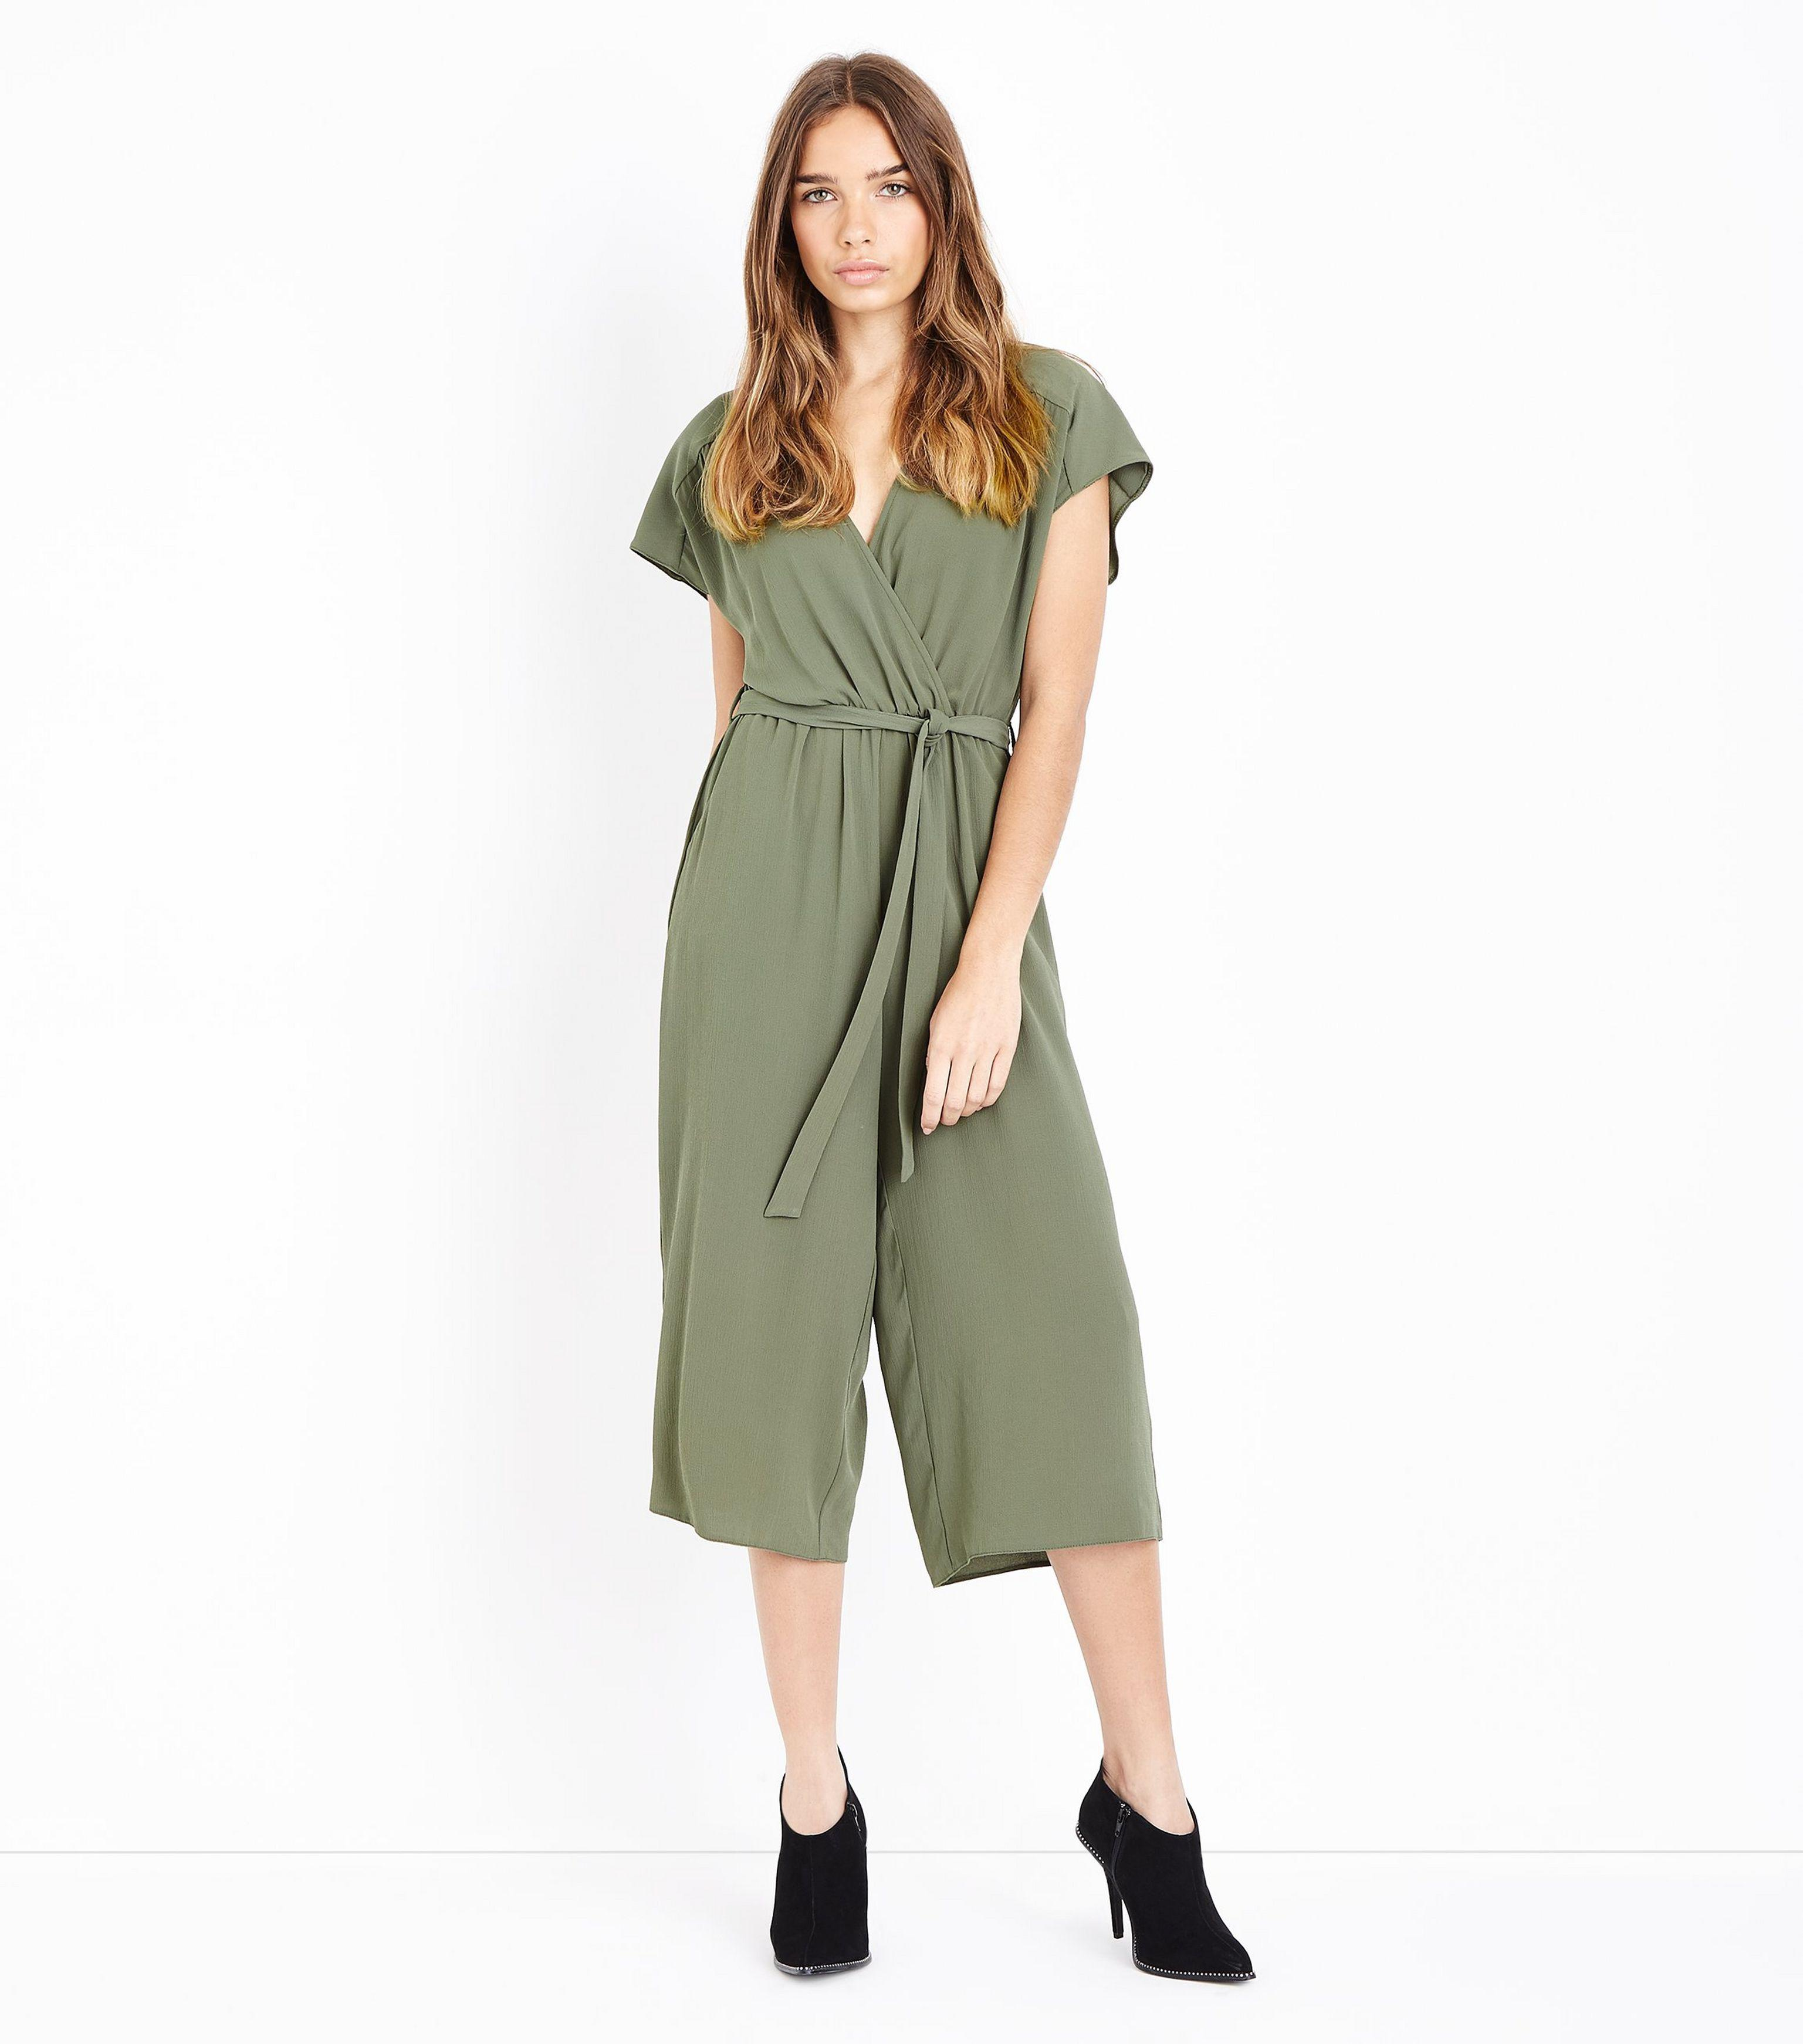 88cfce497ab New Look Khaki Wrap Front Culotte Jumpsuit in Green - Lyst